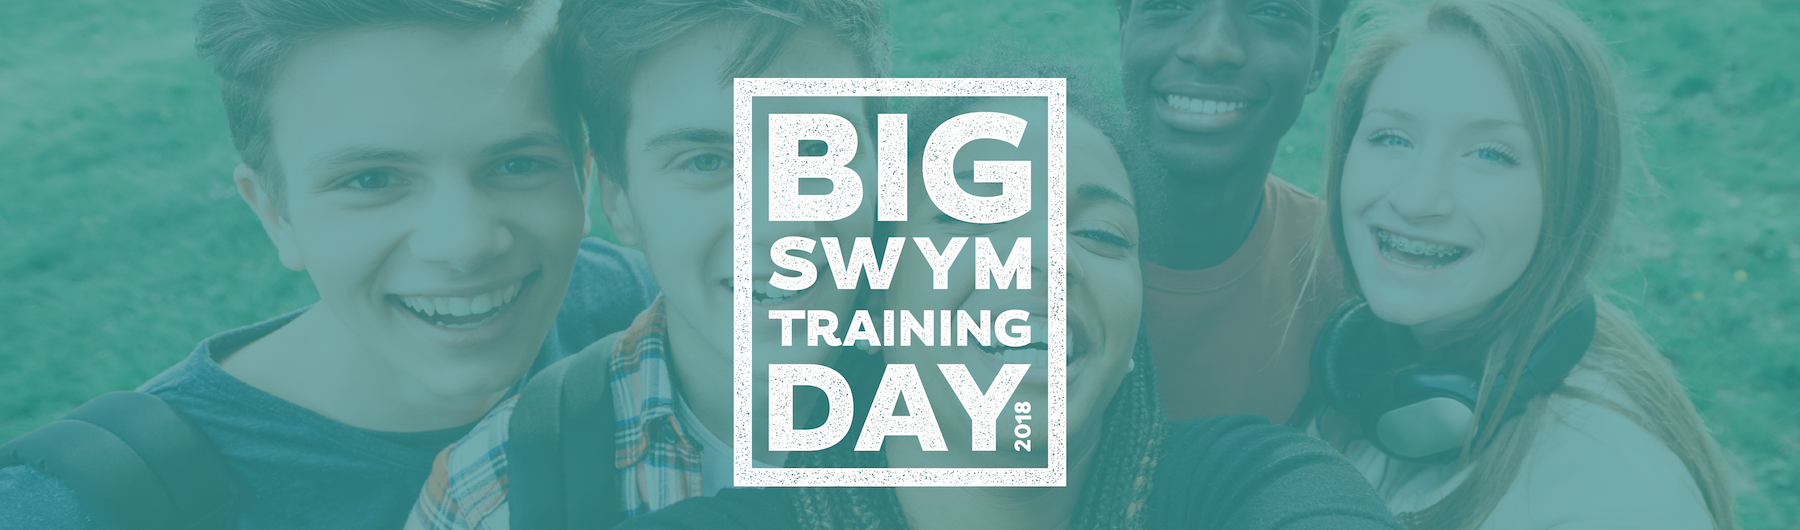 SWYM Big Training Day